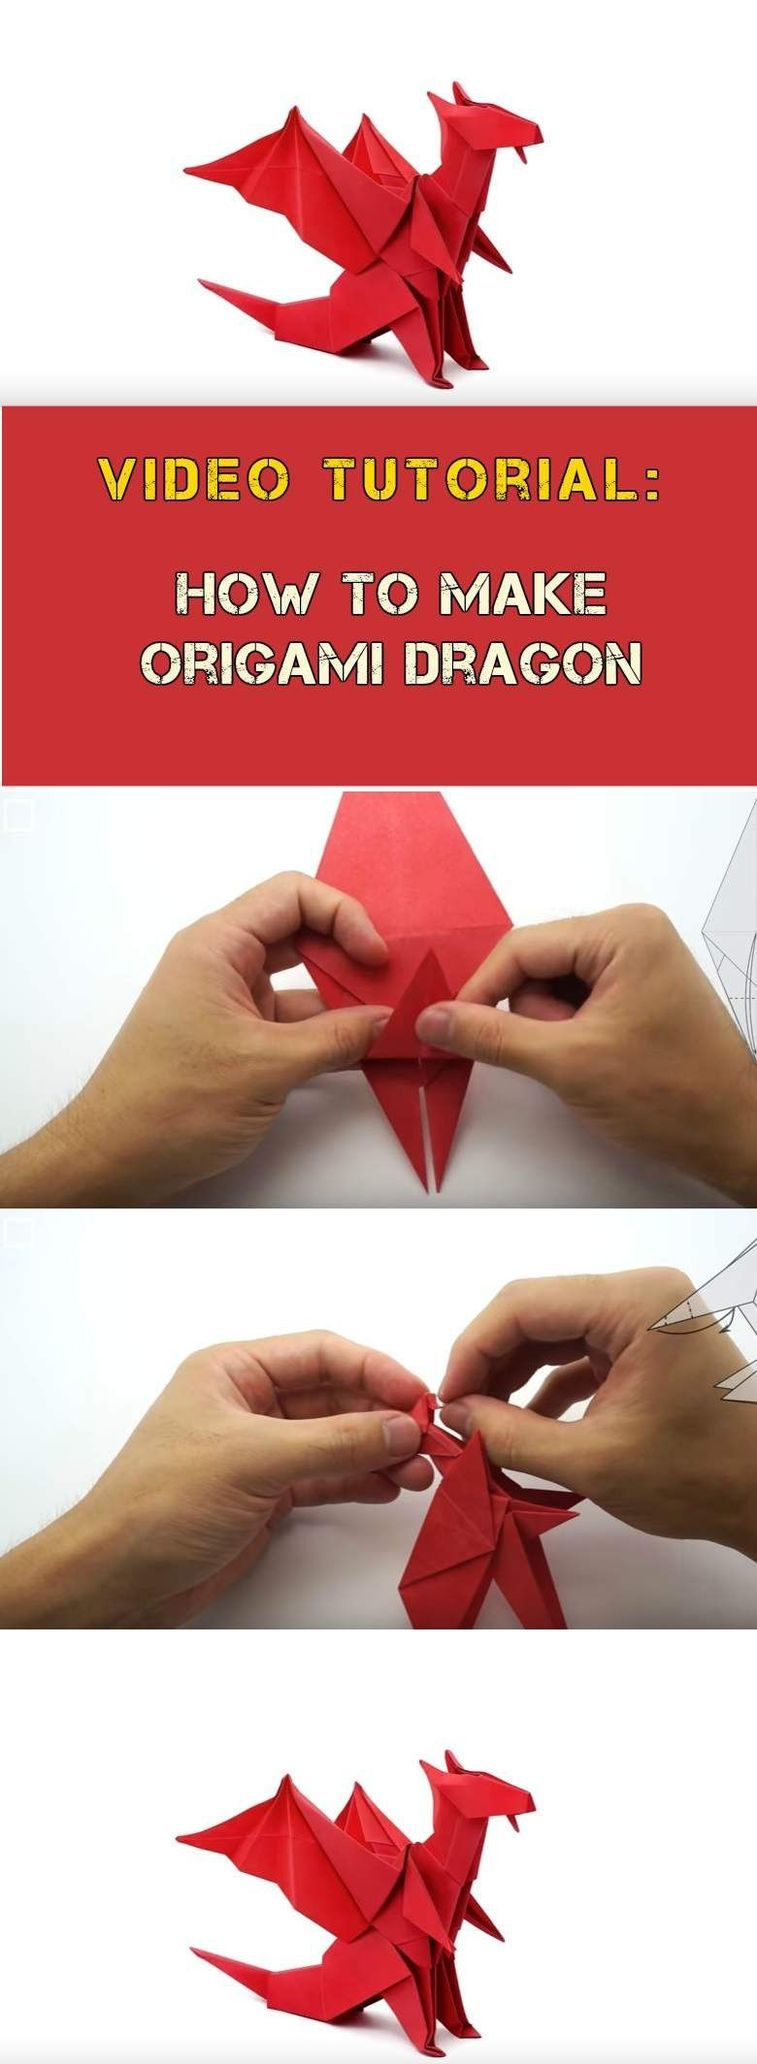 Learn More About Origami Fun Origami Origamipattern Origami Dragon Origami Crafts How To Make Origami